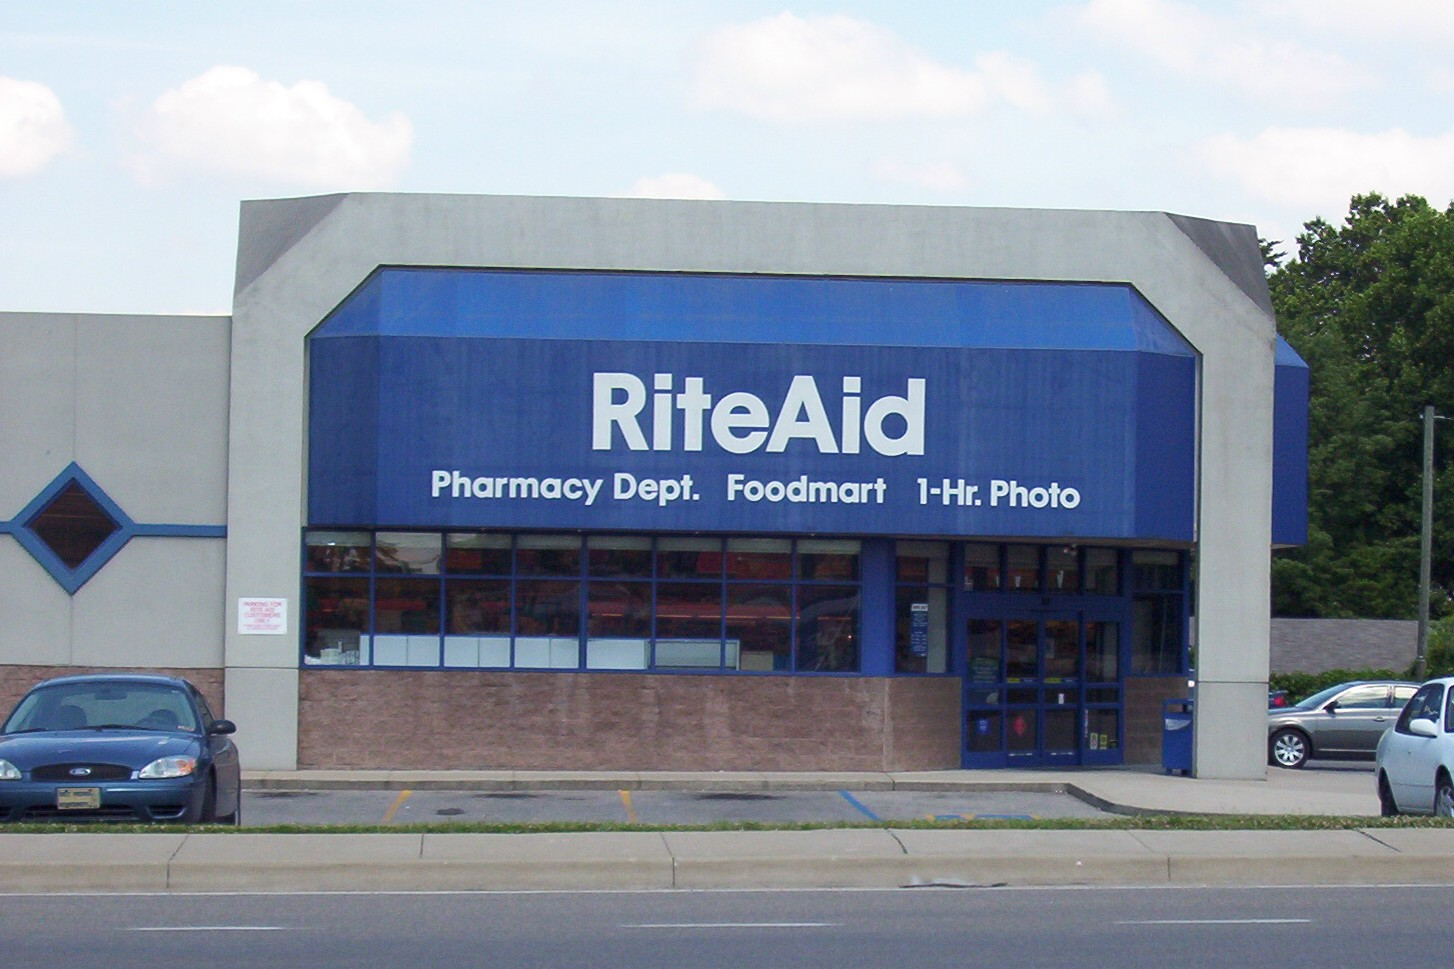 At Rite Aid, we have a personal interest in your health and wellness. That's why we deliver the products and services that you, our valued customer, need to lead a healthier, happier life.